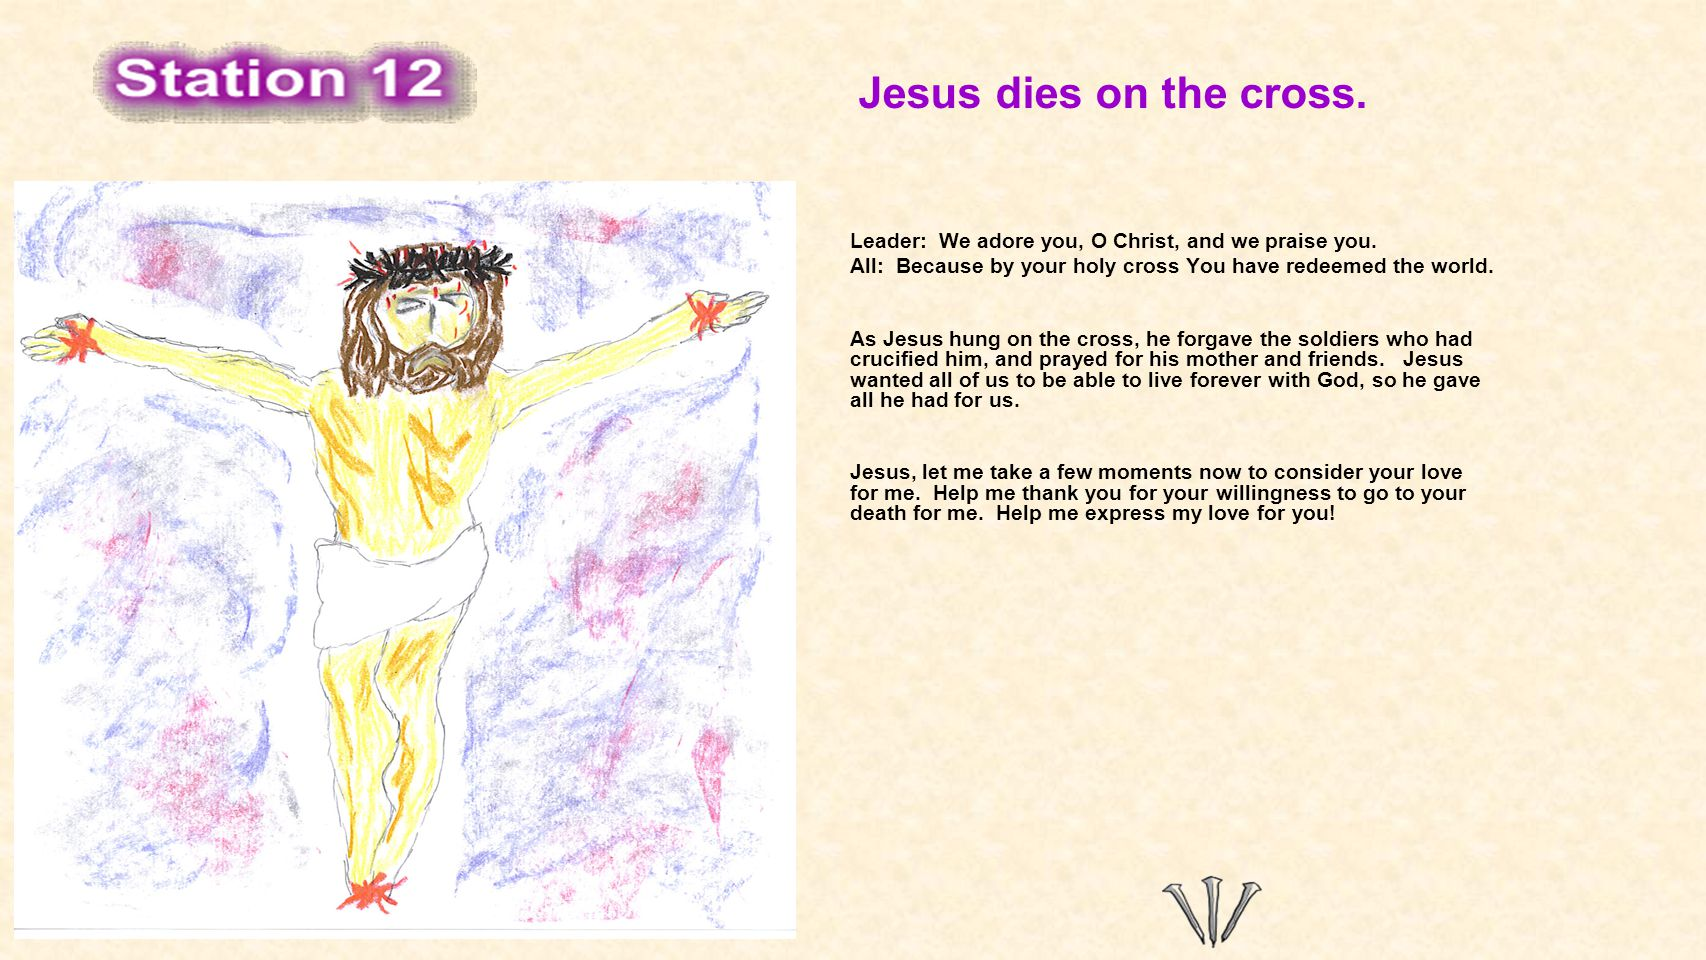 Jesus dies on the cross. Leader: We adore you, O Christ, and we praise you.